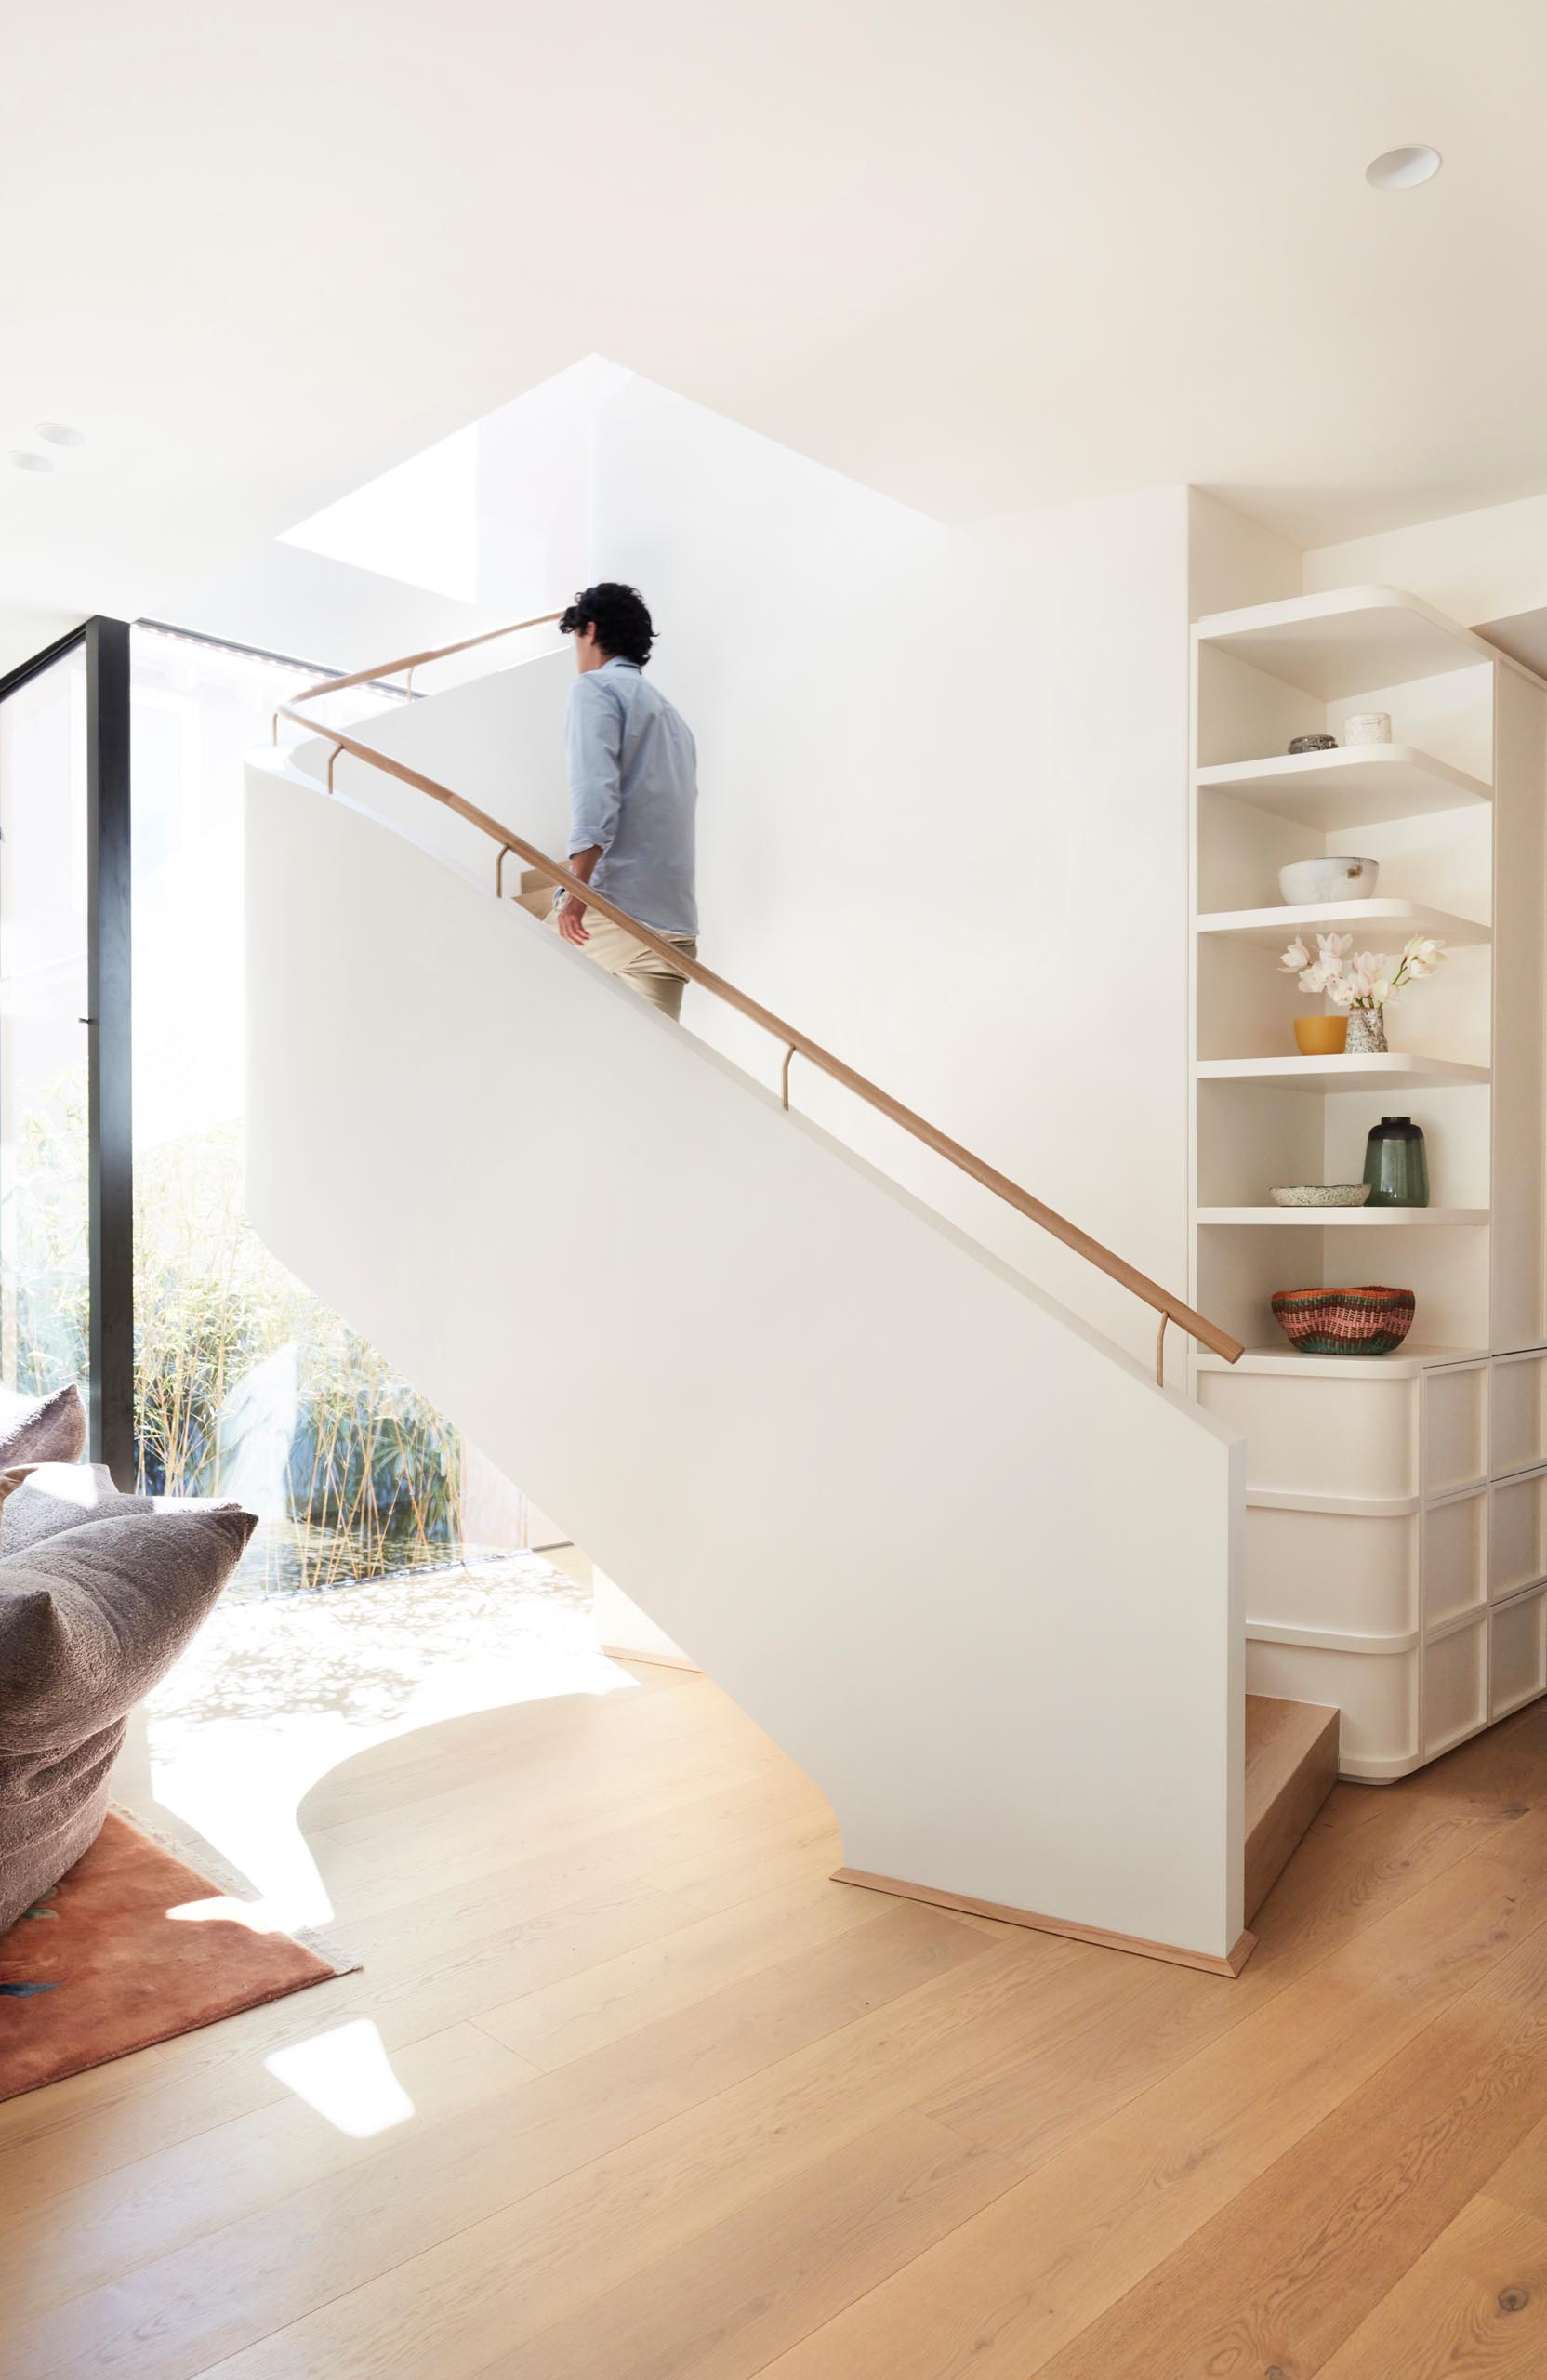 White stairs connect the living spaces with the bedrooms and bathrooms upstairs.